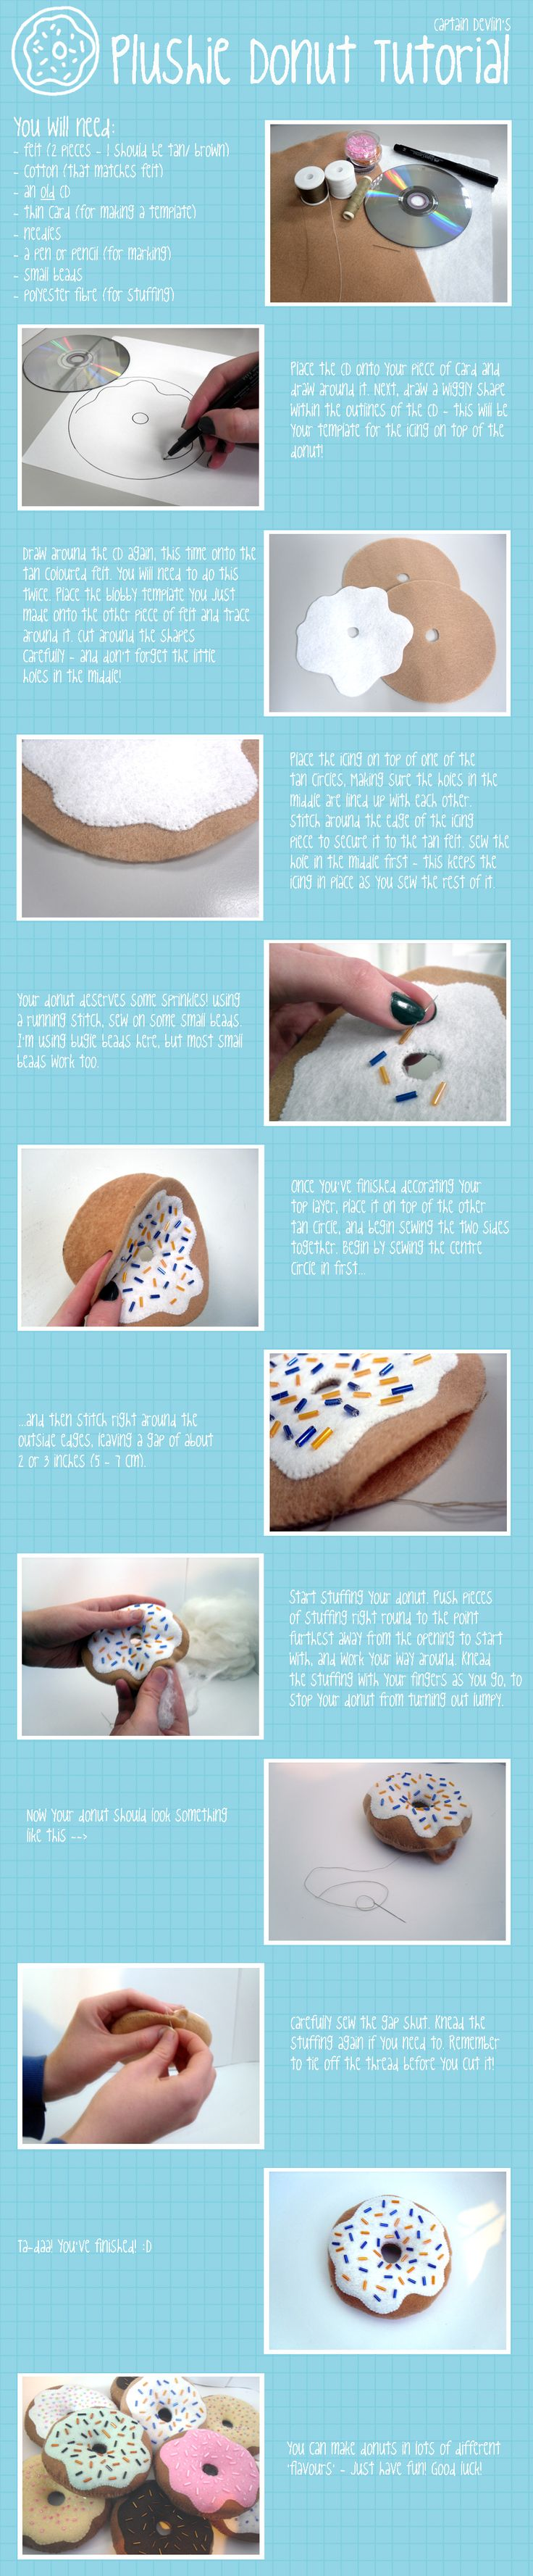 Plush Donut Tutorial by *devliann on deviantART